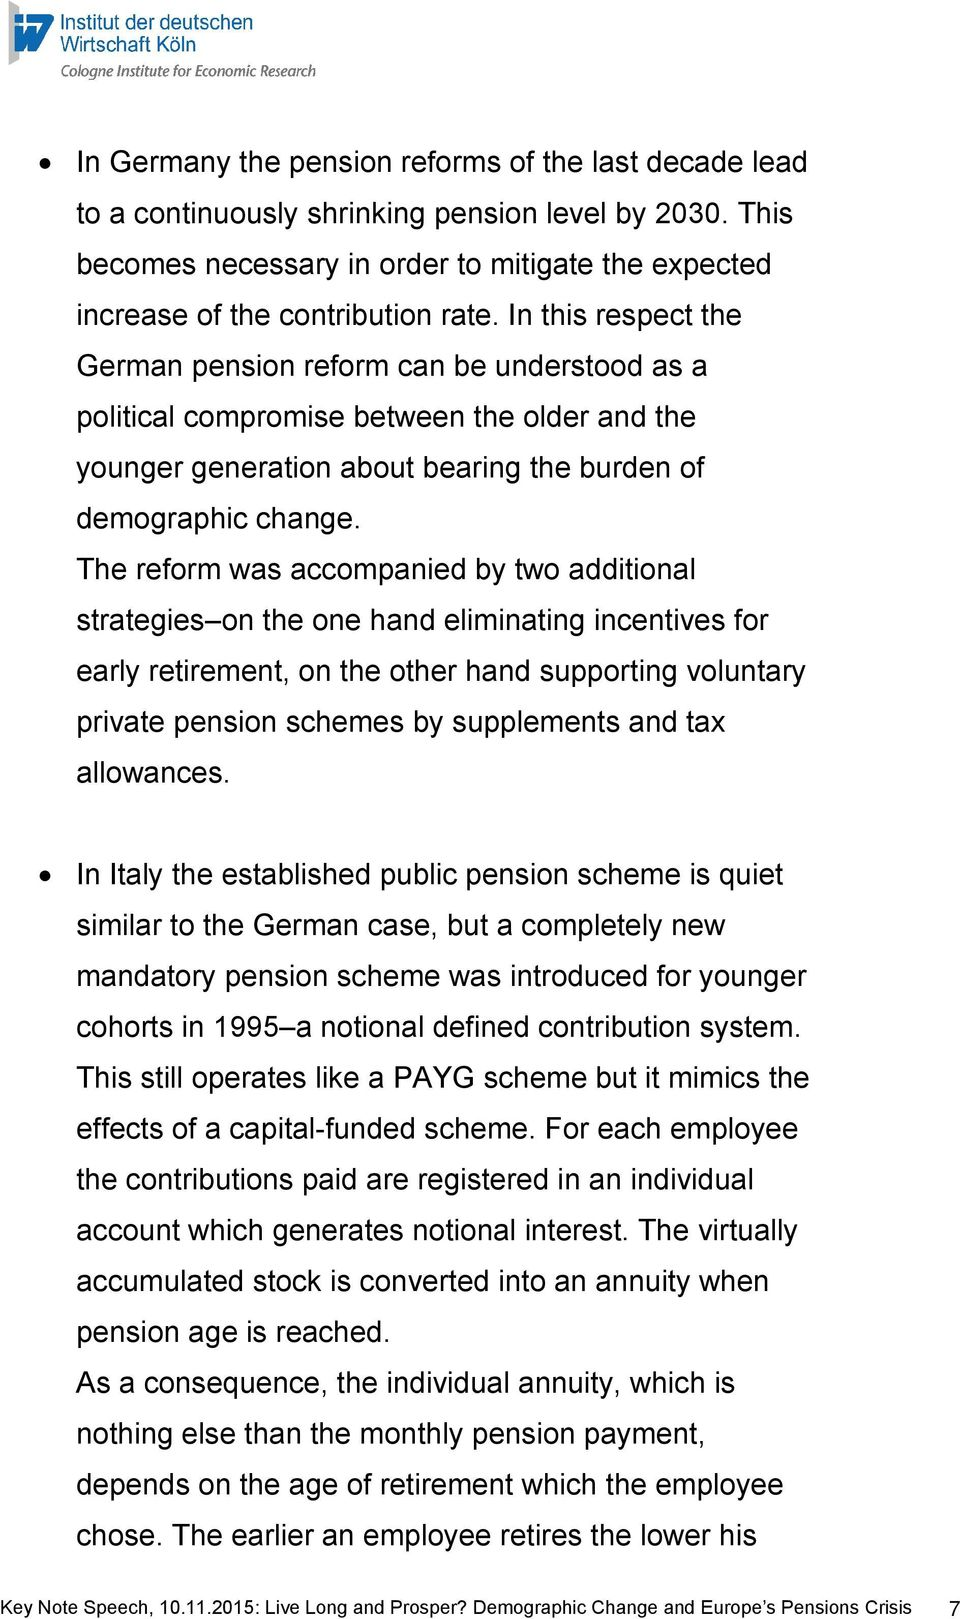 The reform was accompanied by two additional strategies on the one hand eliminating incentives for early retirement, on the other hand supporting voluntary private pension schemes by supplements and